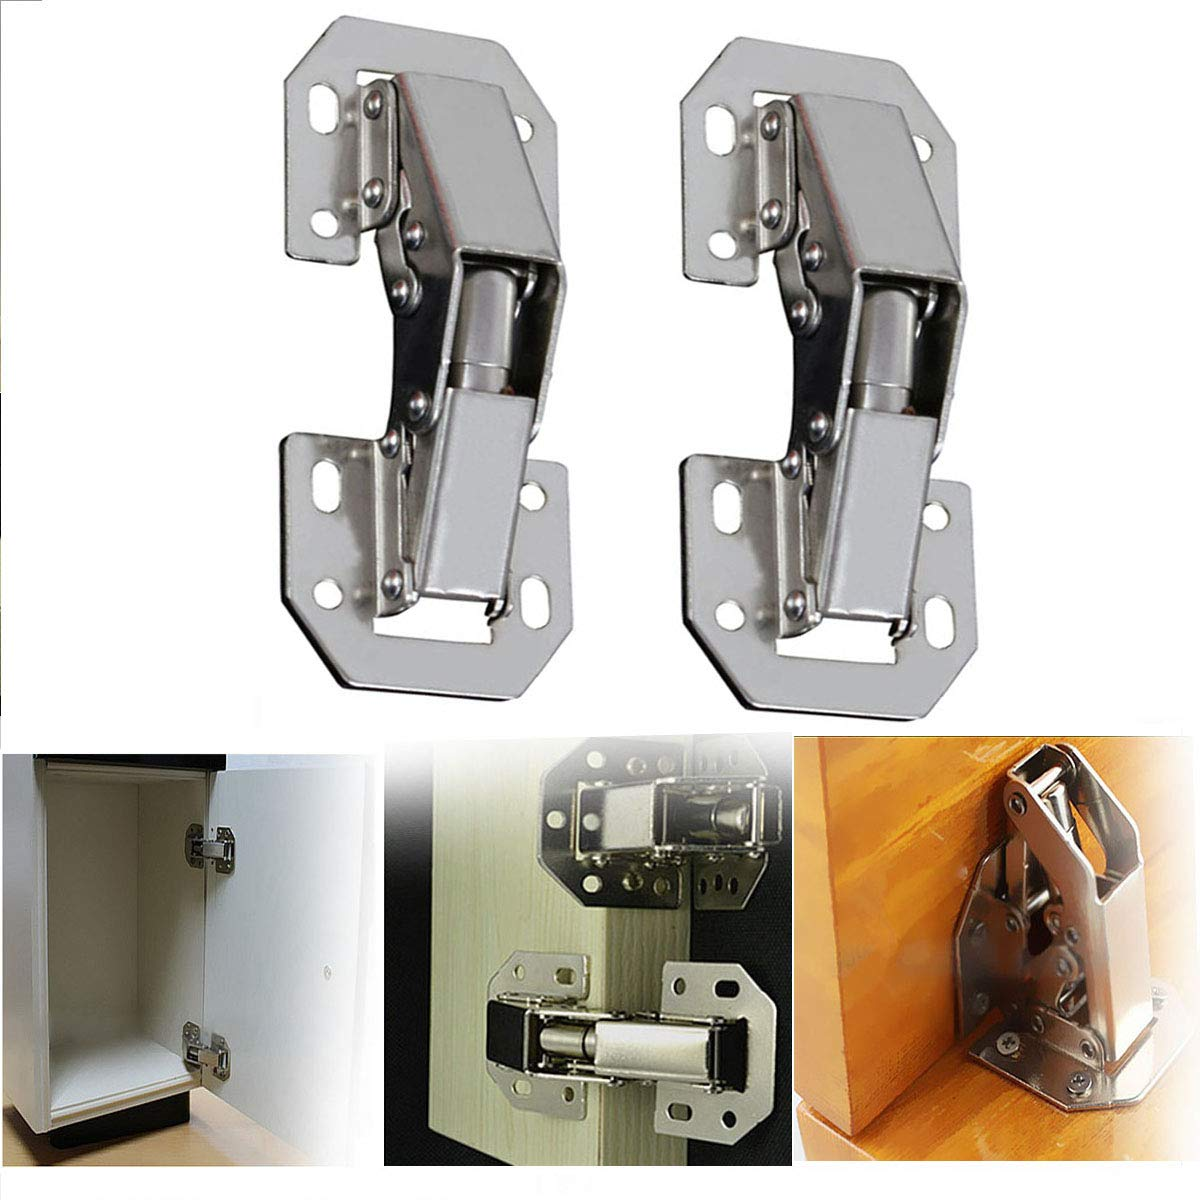 2 Pieces of 4 inch 90 Degree Concealed Cabinet Spring Door Hinge Without Drilling Hinge Furniture Hinge Full Coverage